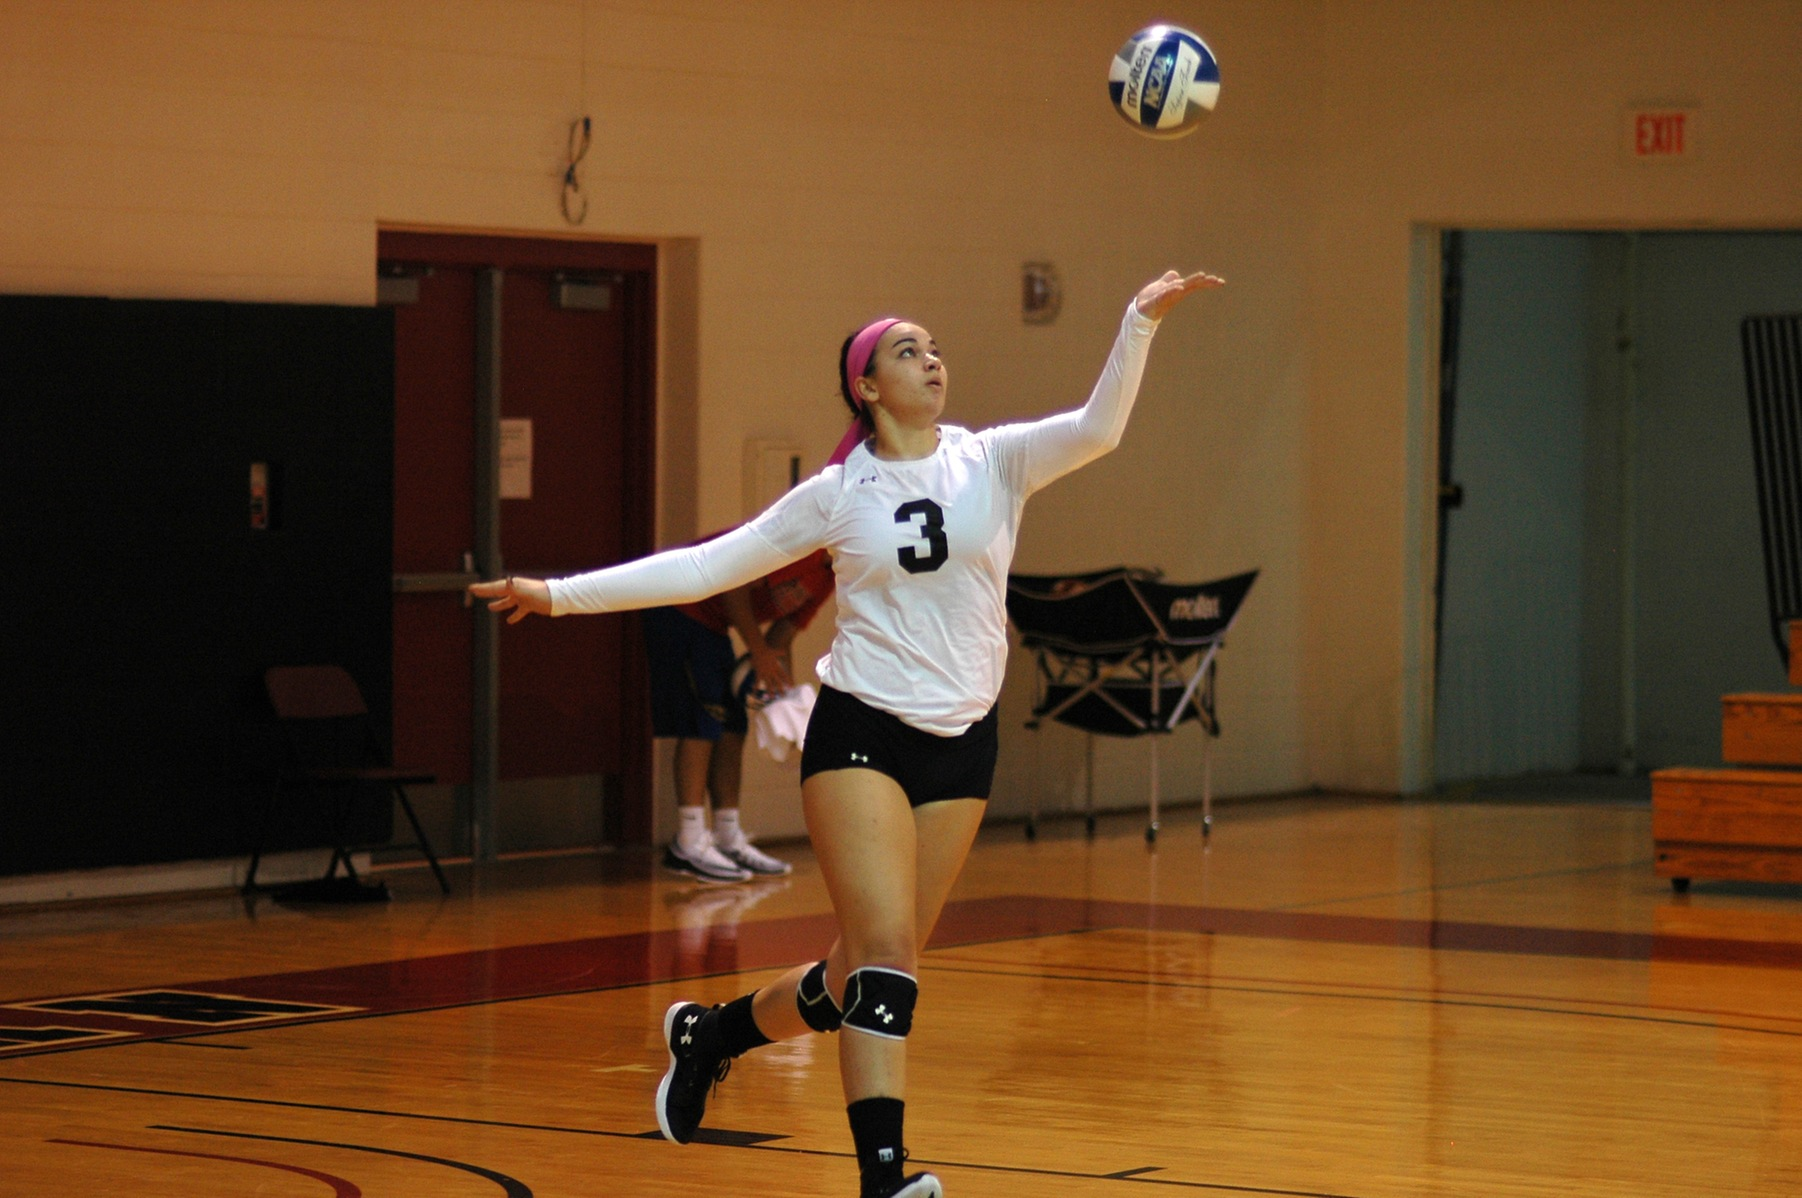 The Dominican College women's volleyball team opened up the season with two losses to Southern Connecticut State University and Pace University.